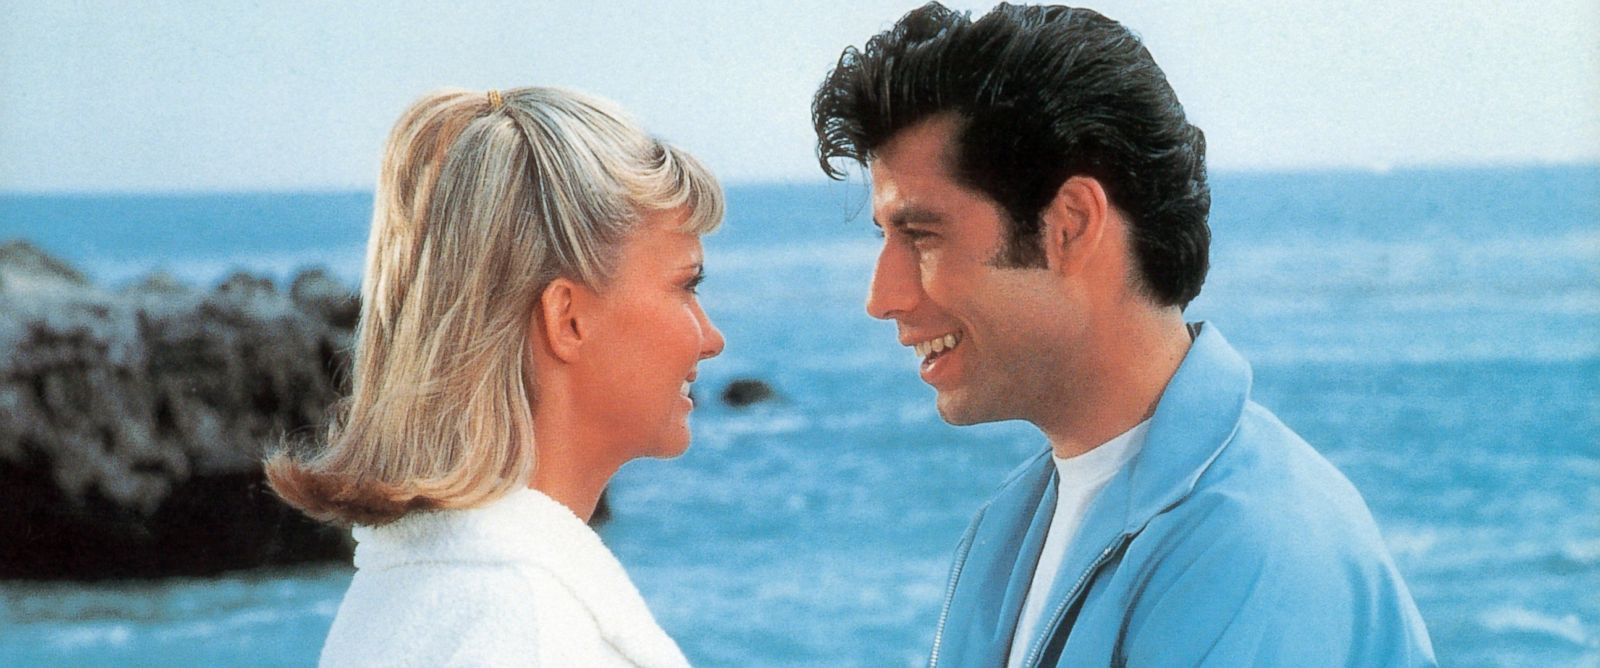 "PHOTO: Olivia Newton-John and John Travolta on the beach in a scene from the film ""Grease"", 1978."